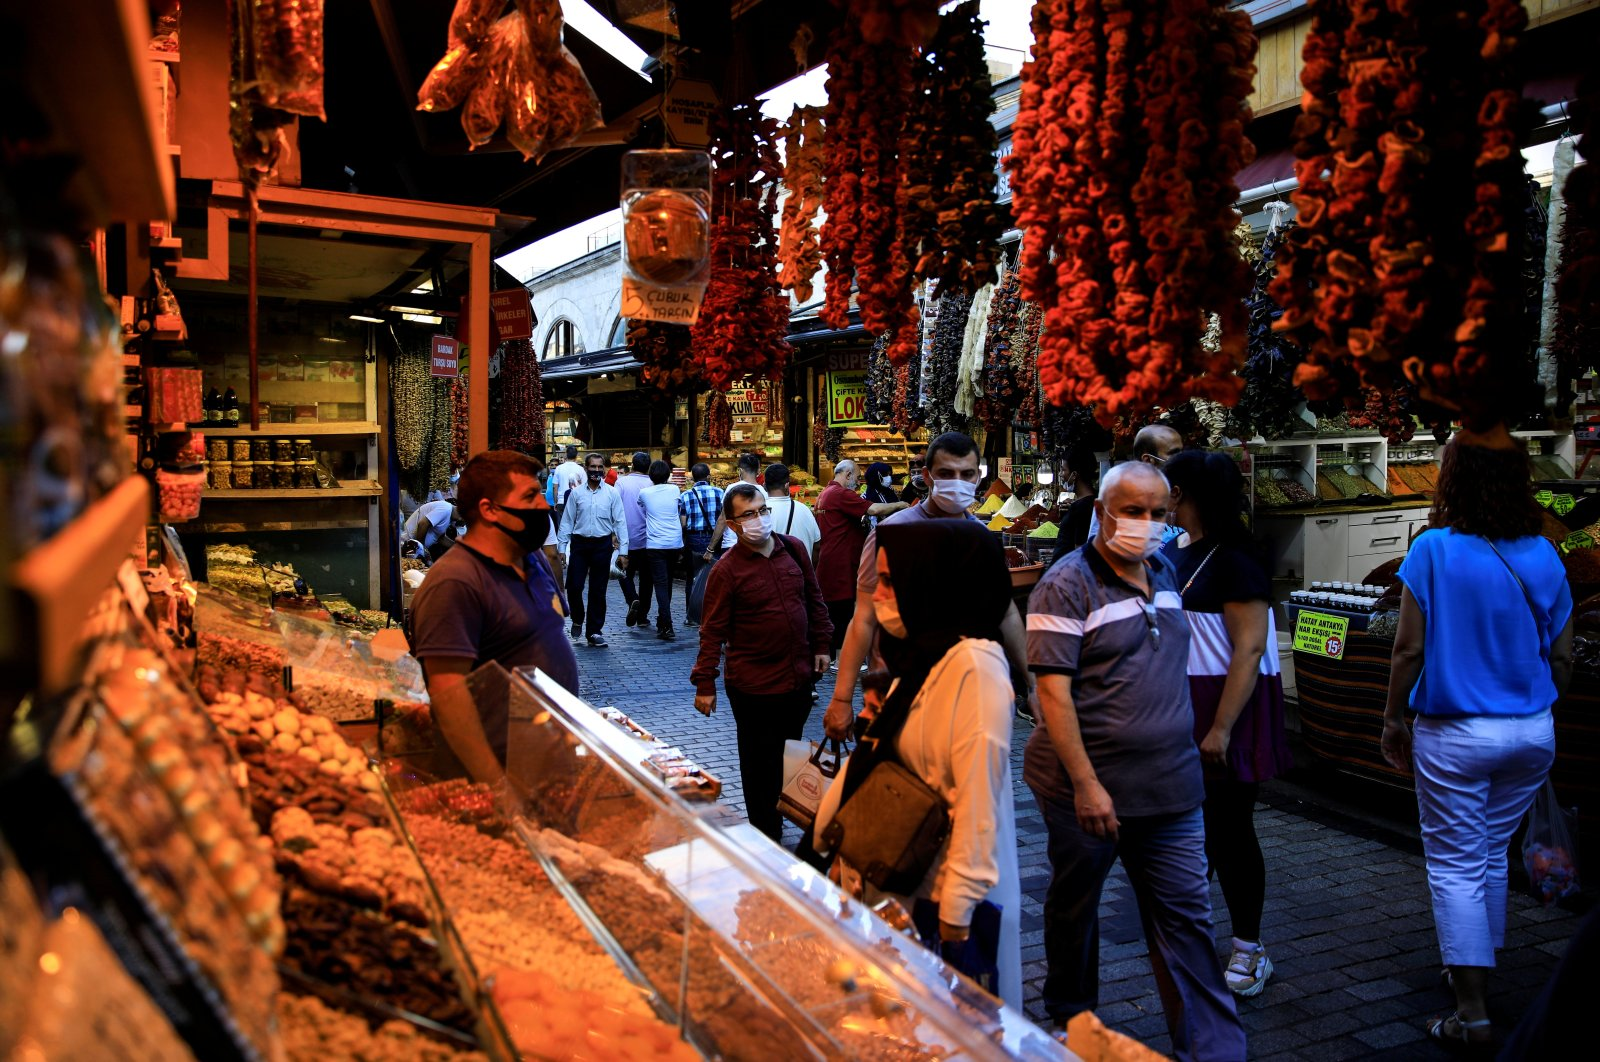 People shop at the Spice Market also known as the Egyptian Bazaar as the outbreak of the coronavirus (COVID-19) continues, in Istanbul, Turkey, Sept. 9, 2020. (Reuters Photo)